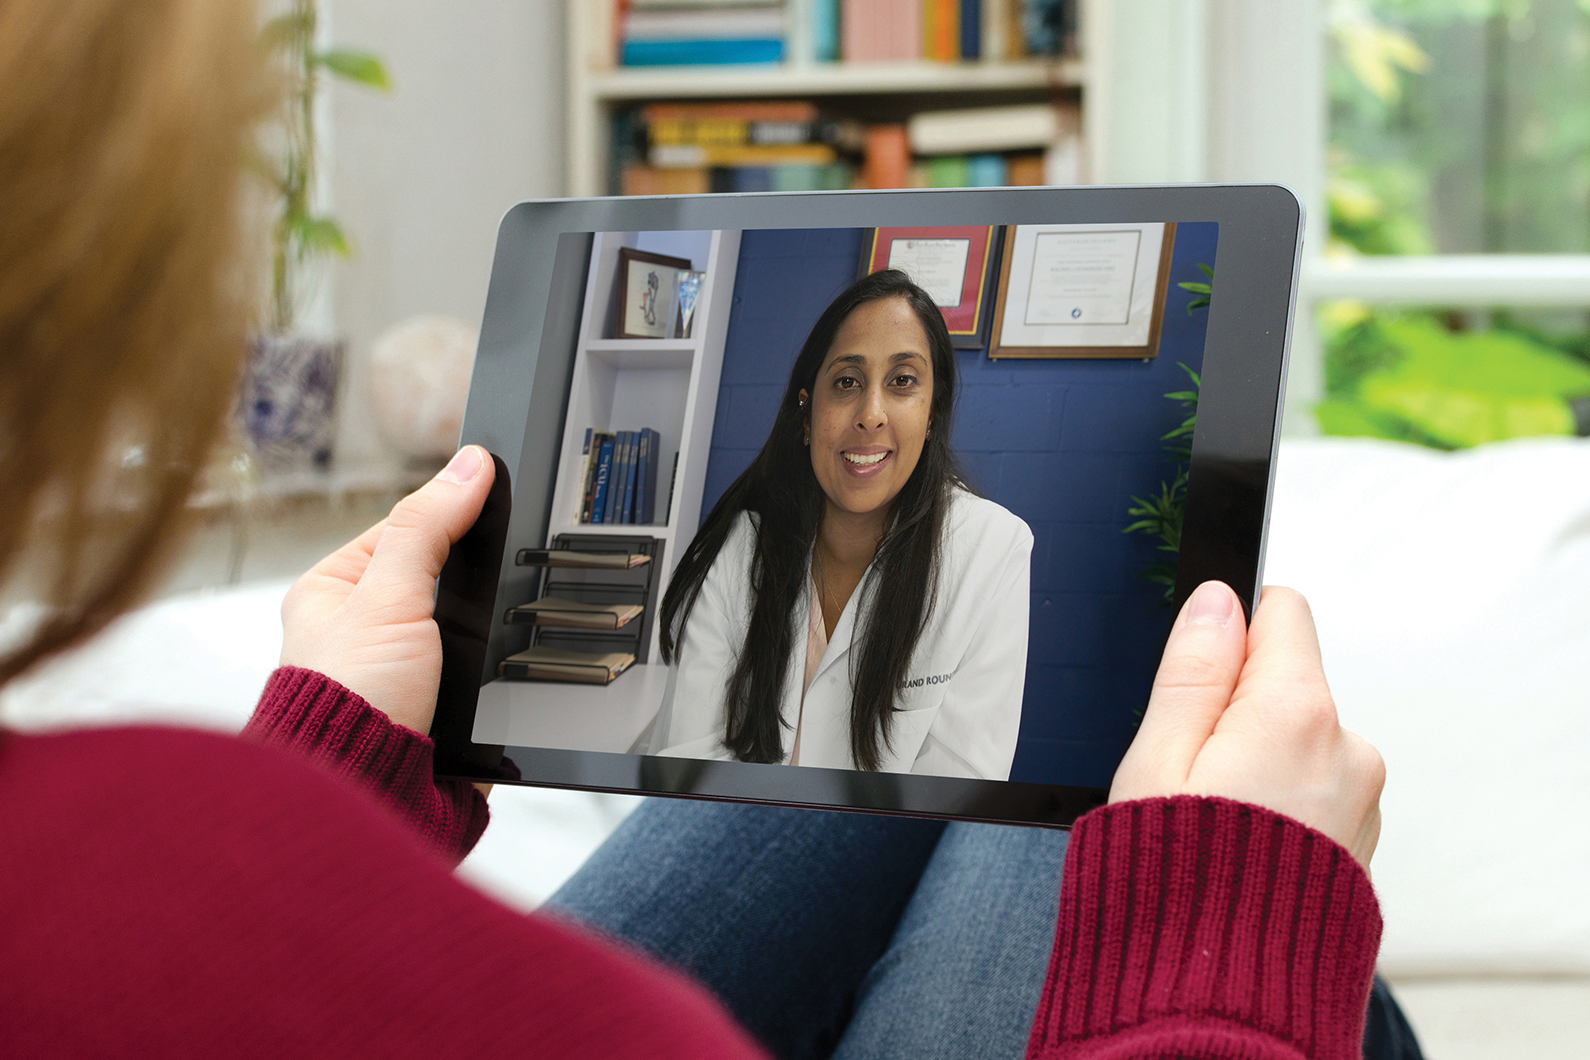 Woman at home in video call on tablet